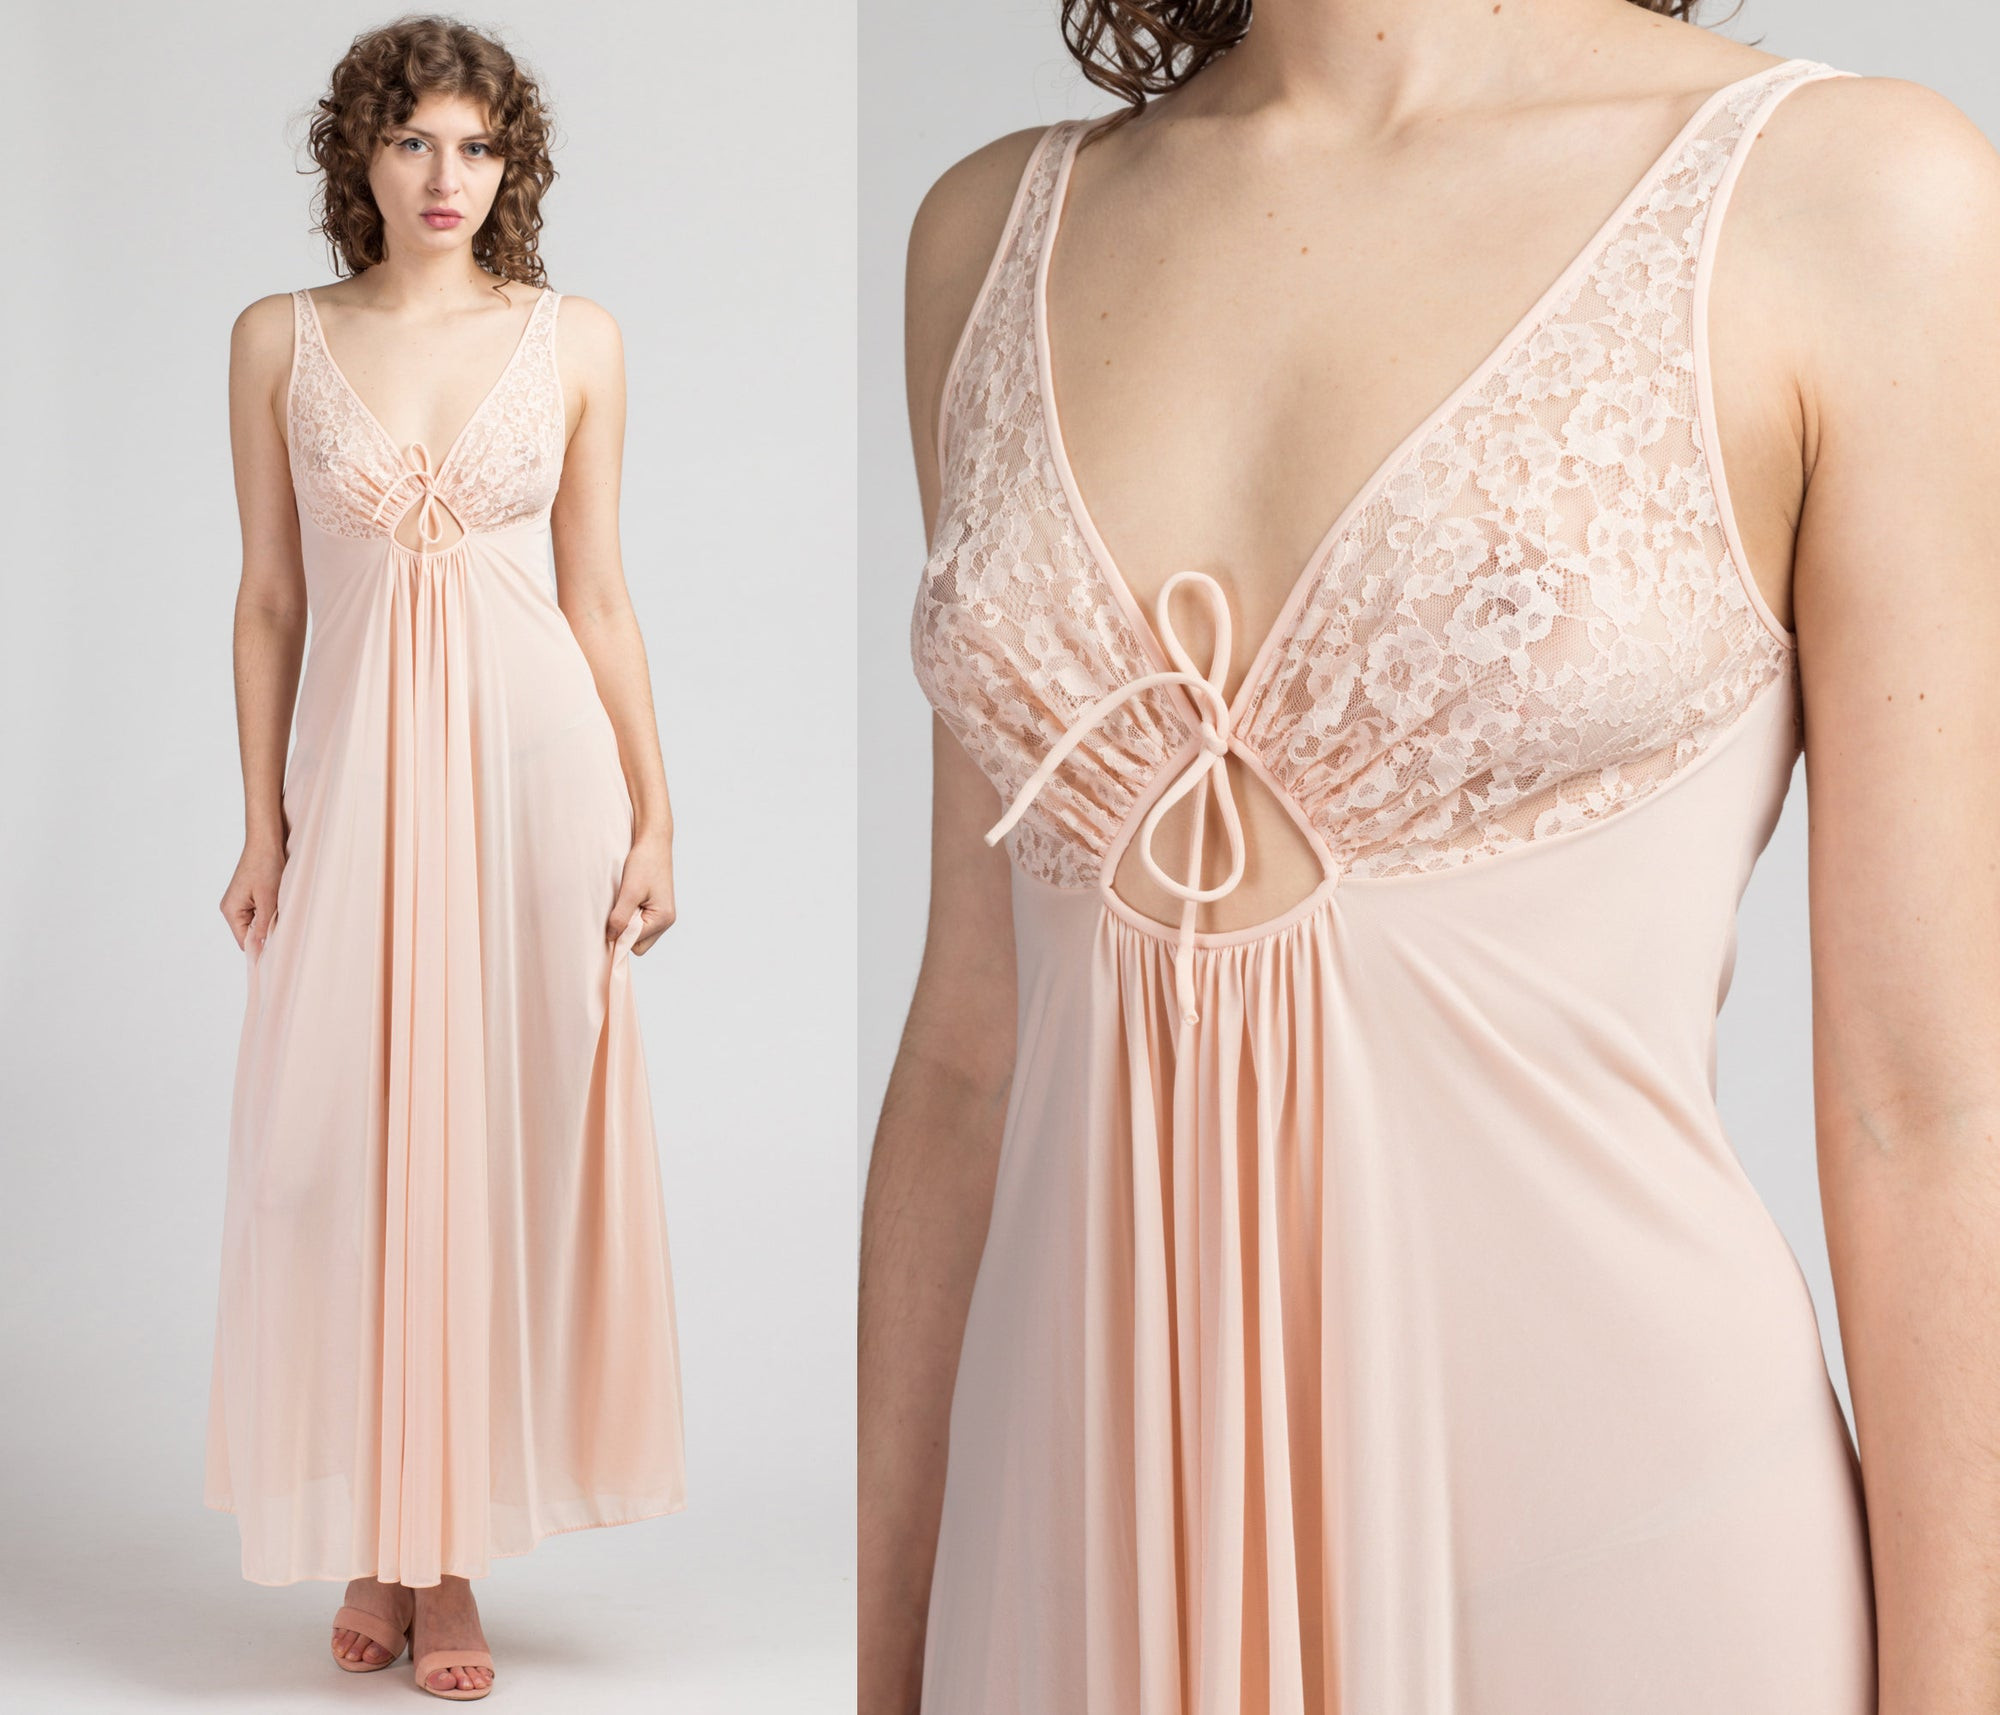 70s Keyhole Slip Nightgown - Small to Medium | Vintage Baby Pink Sheer Lace Lingerie Maxi Slip Dress